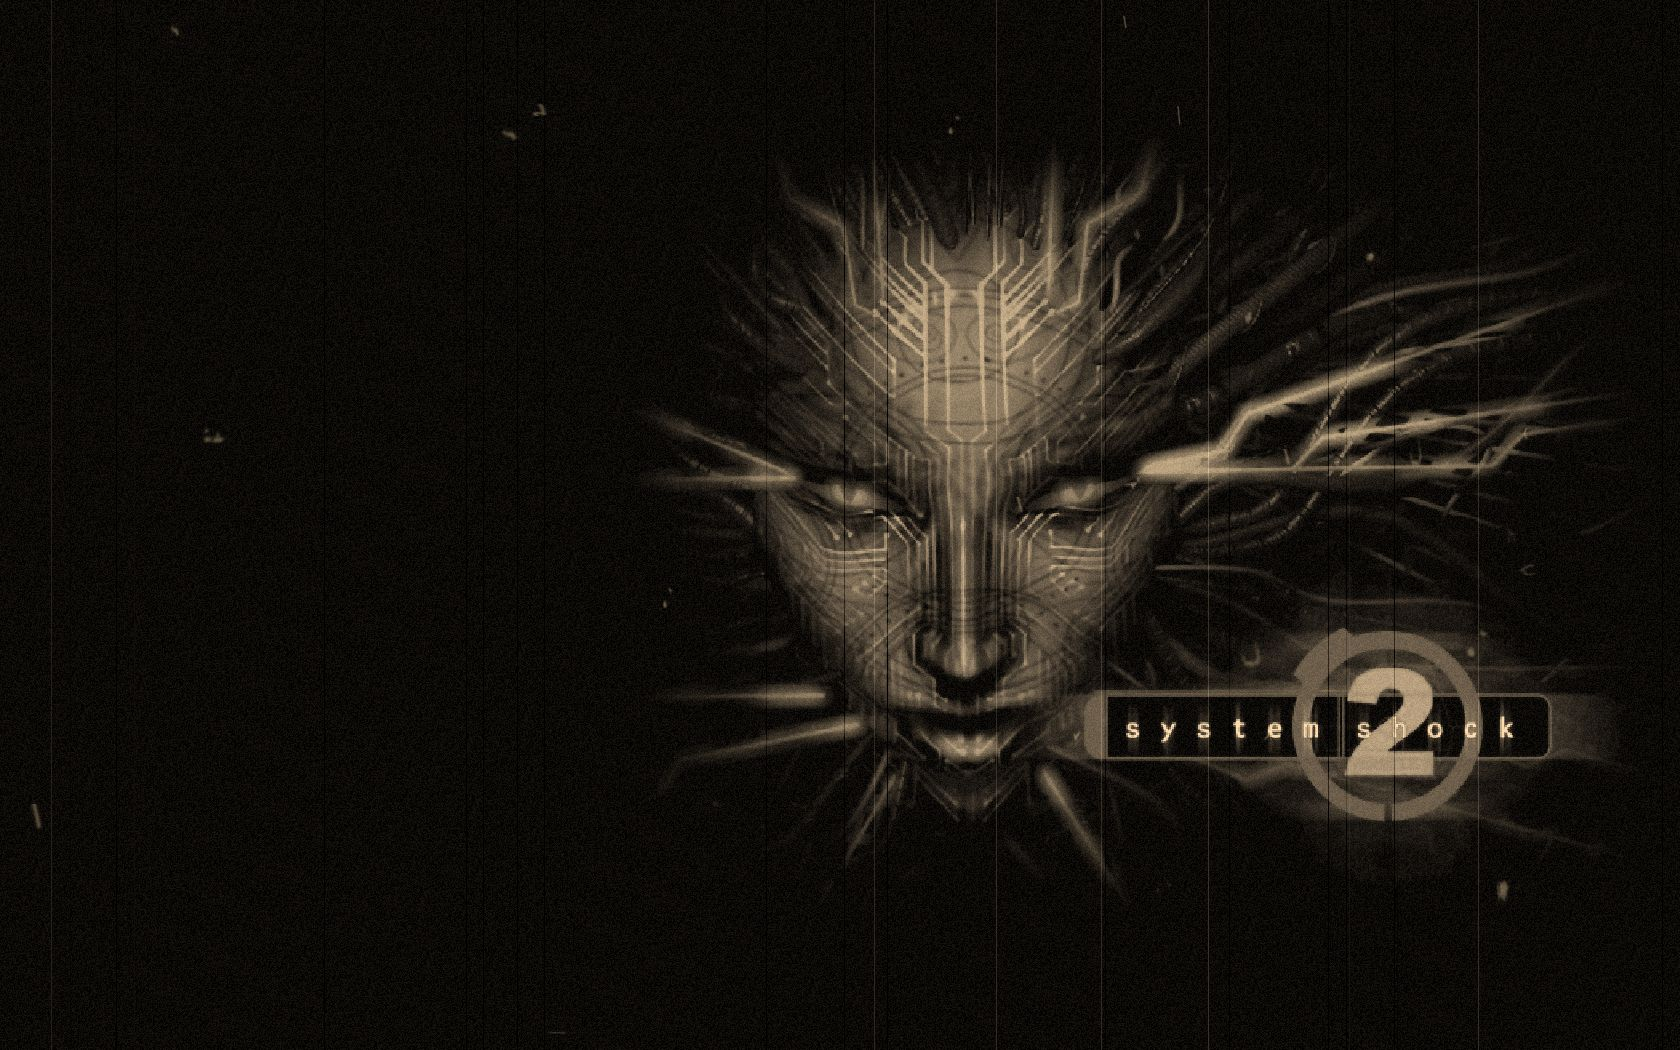 Honda Murfreesboro Tn >> System Shock 2 is coming to GOG! - Nissan Forum | Nissan